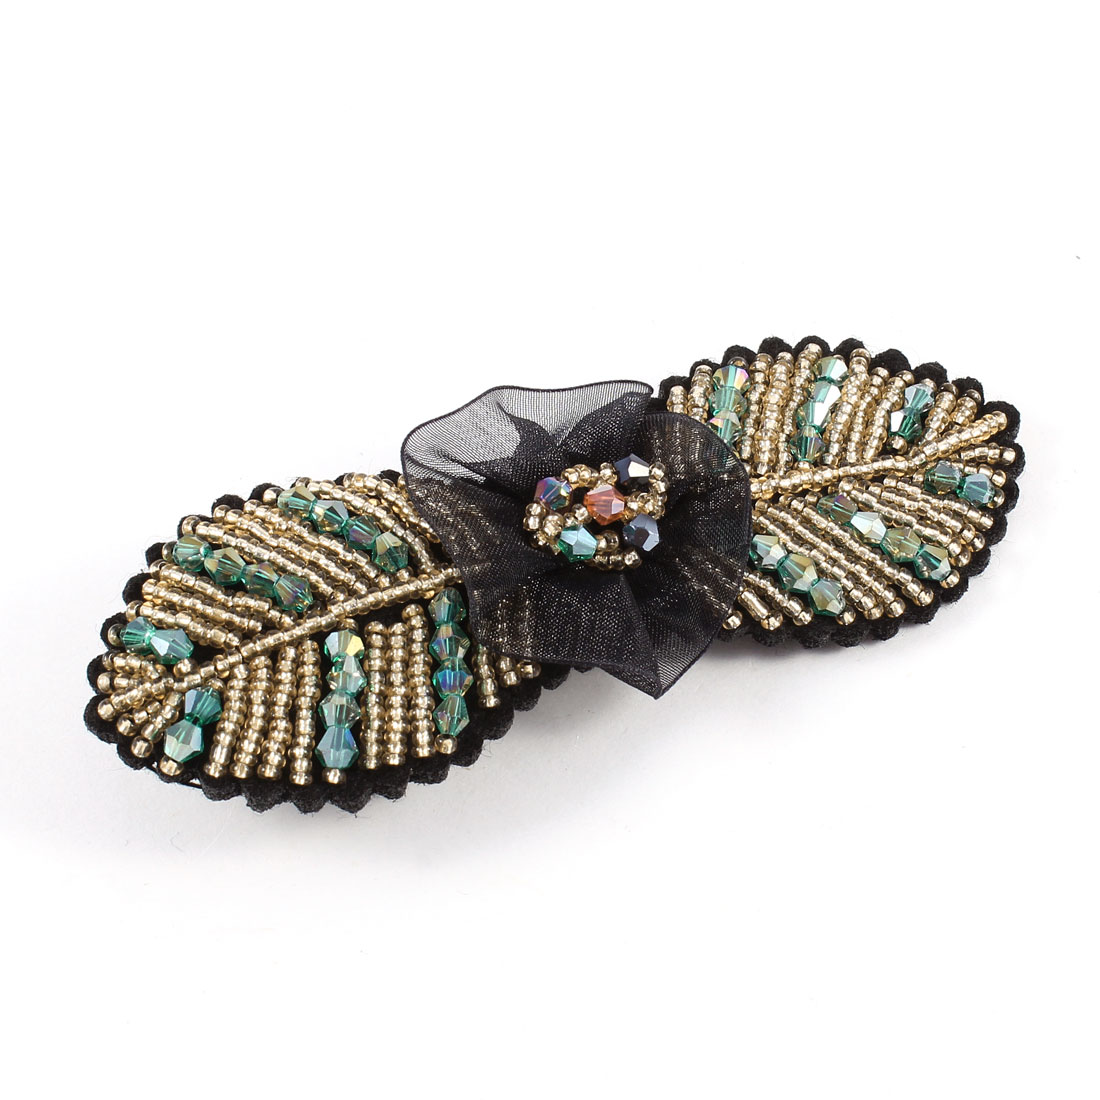 Headwear Leaf Shape Metal Alligator Hair Clip Hairclip Black Teal Blue for Lady